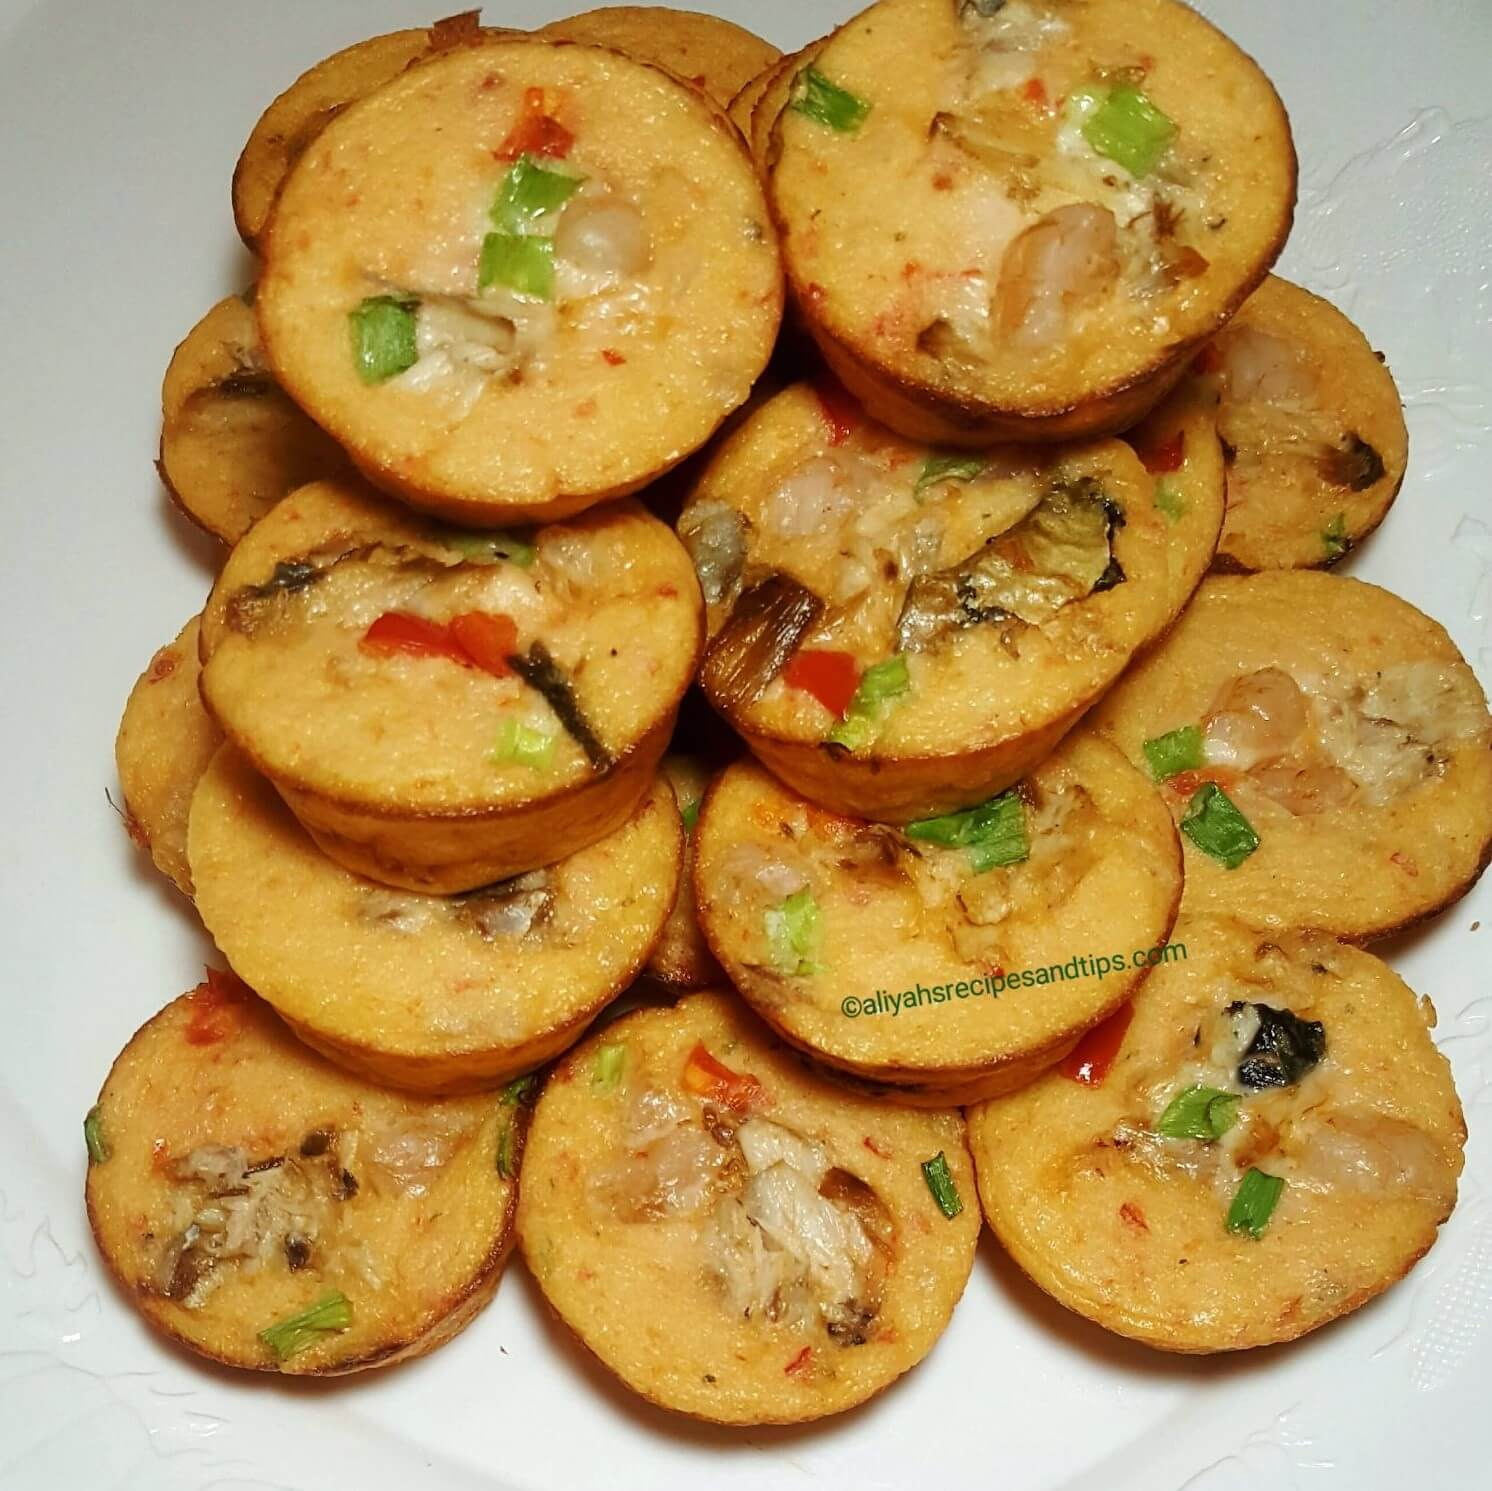 moimoi, Nigerian, baked, recipe, AFrican, foil, plantain, beans, moimoi, how to make moimoi, how to bake moimoi, Nigerian moimoi, African moimoi